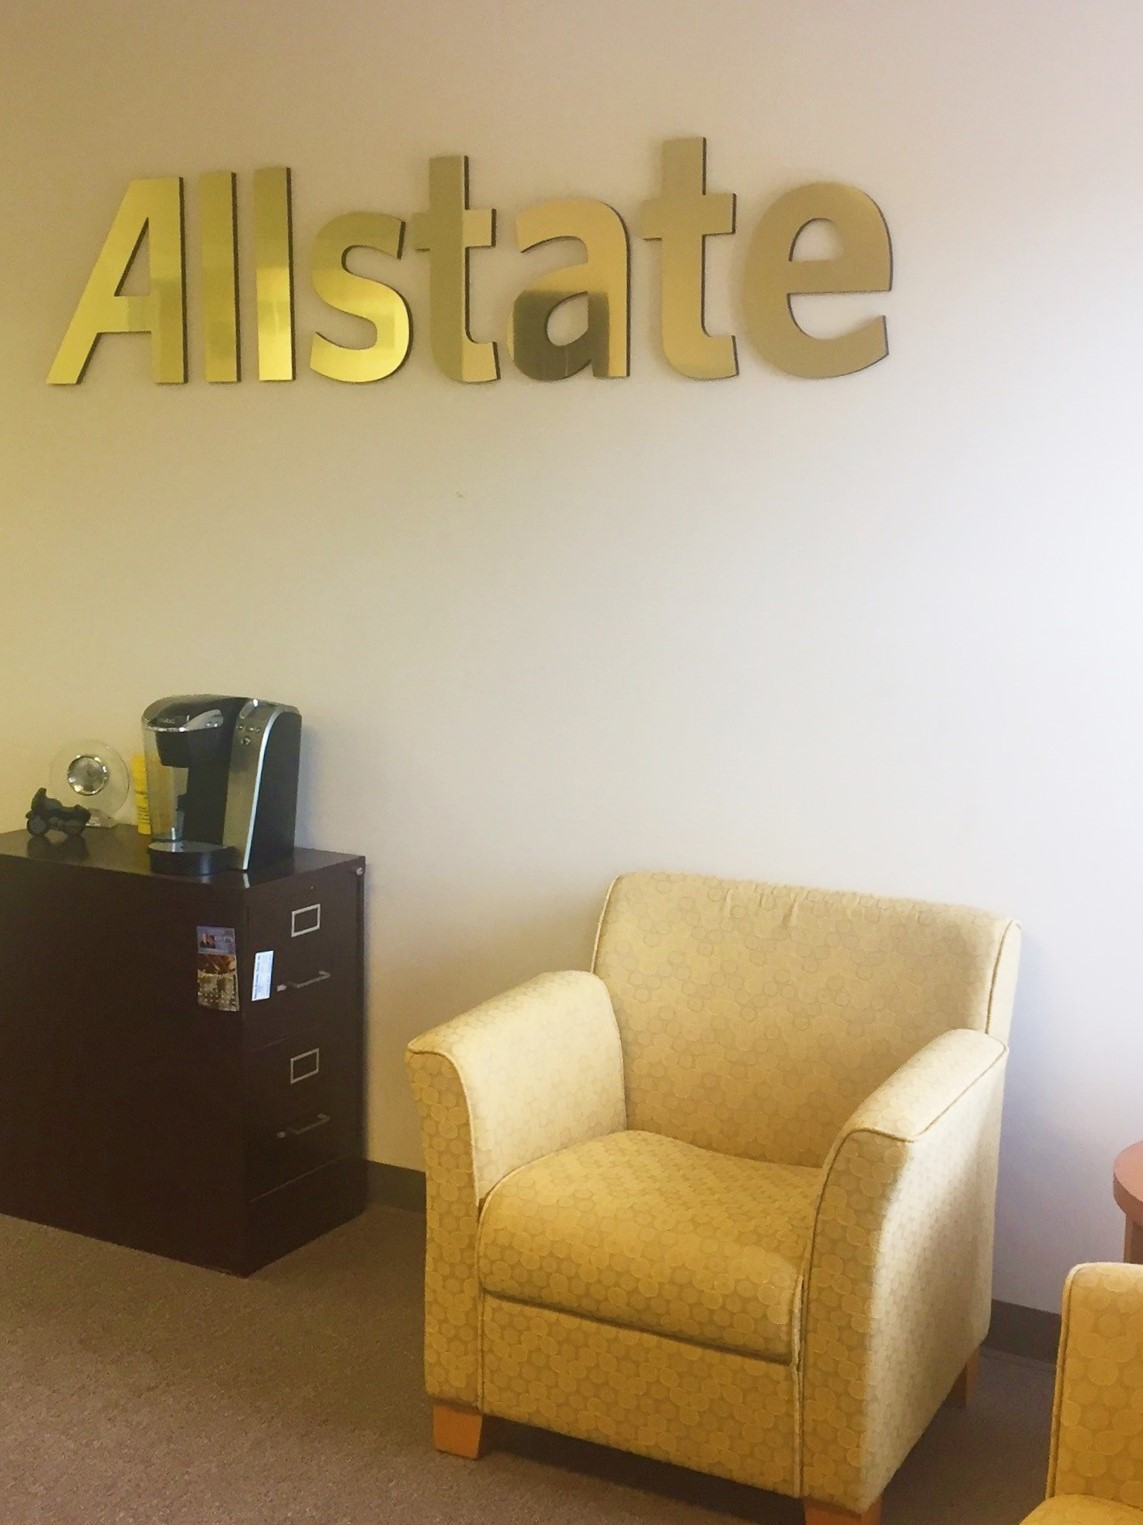 Keith Evans: Allstate Insurance image 3